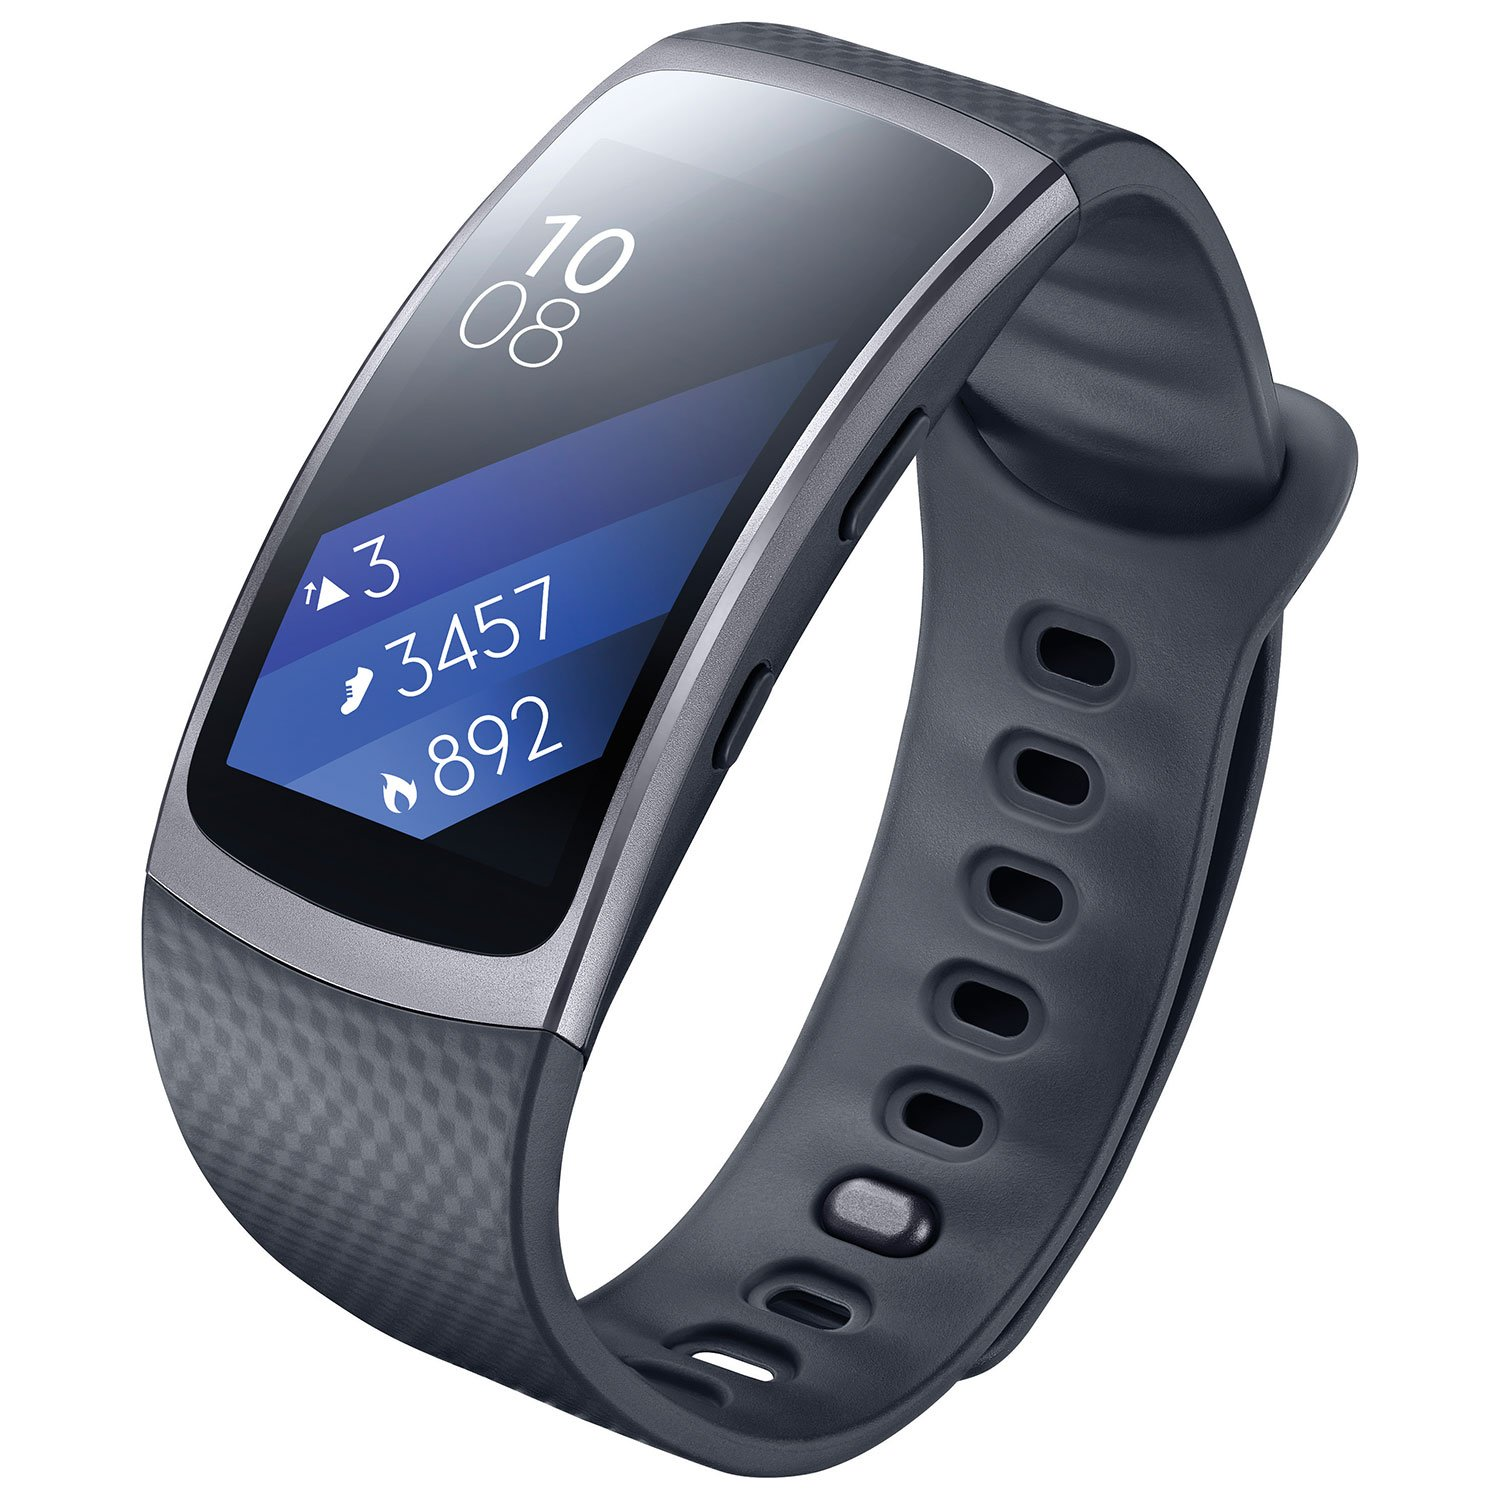 Samsung Gear Fit 2 SM-R360 - Smartwatch de 1.5 (4 GB, 1 GHz, 512 MB RAM, Tizen, talla S), color negro [Asia Version]